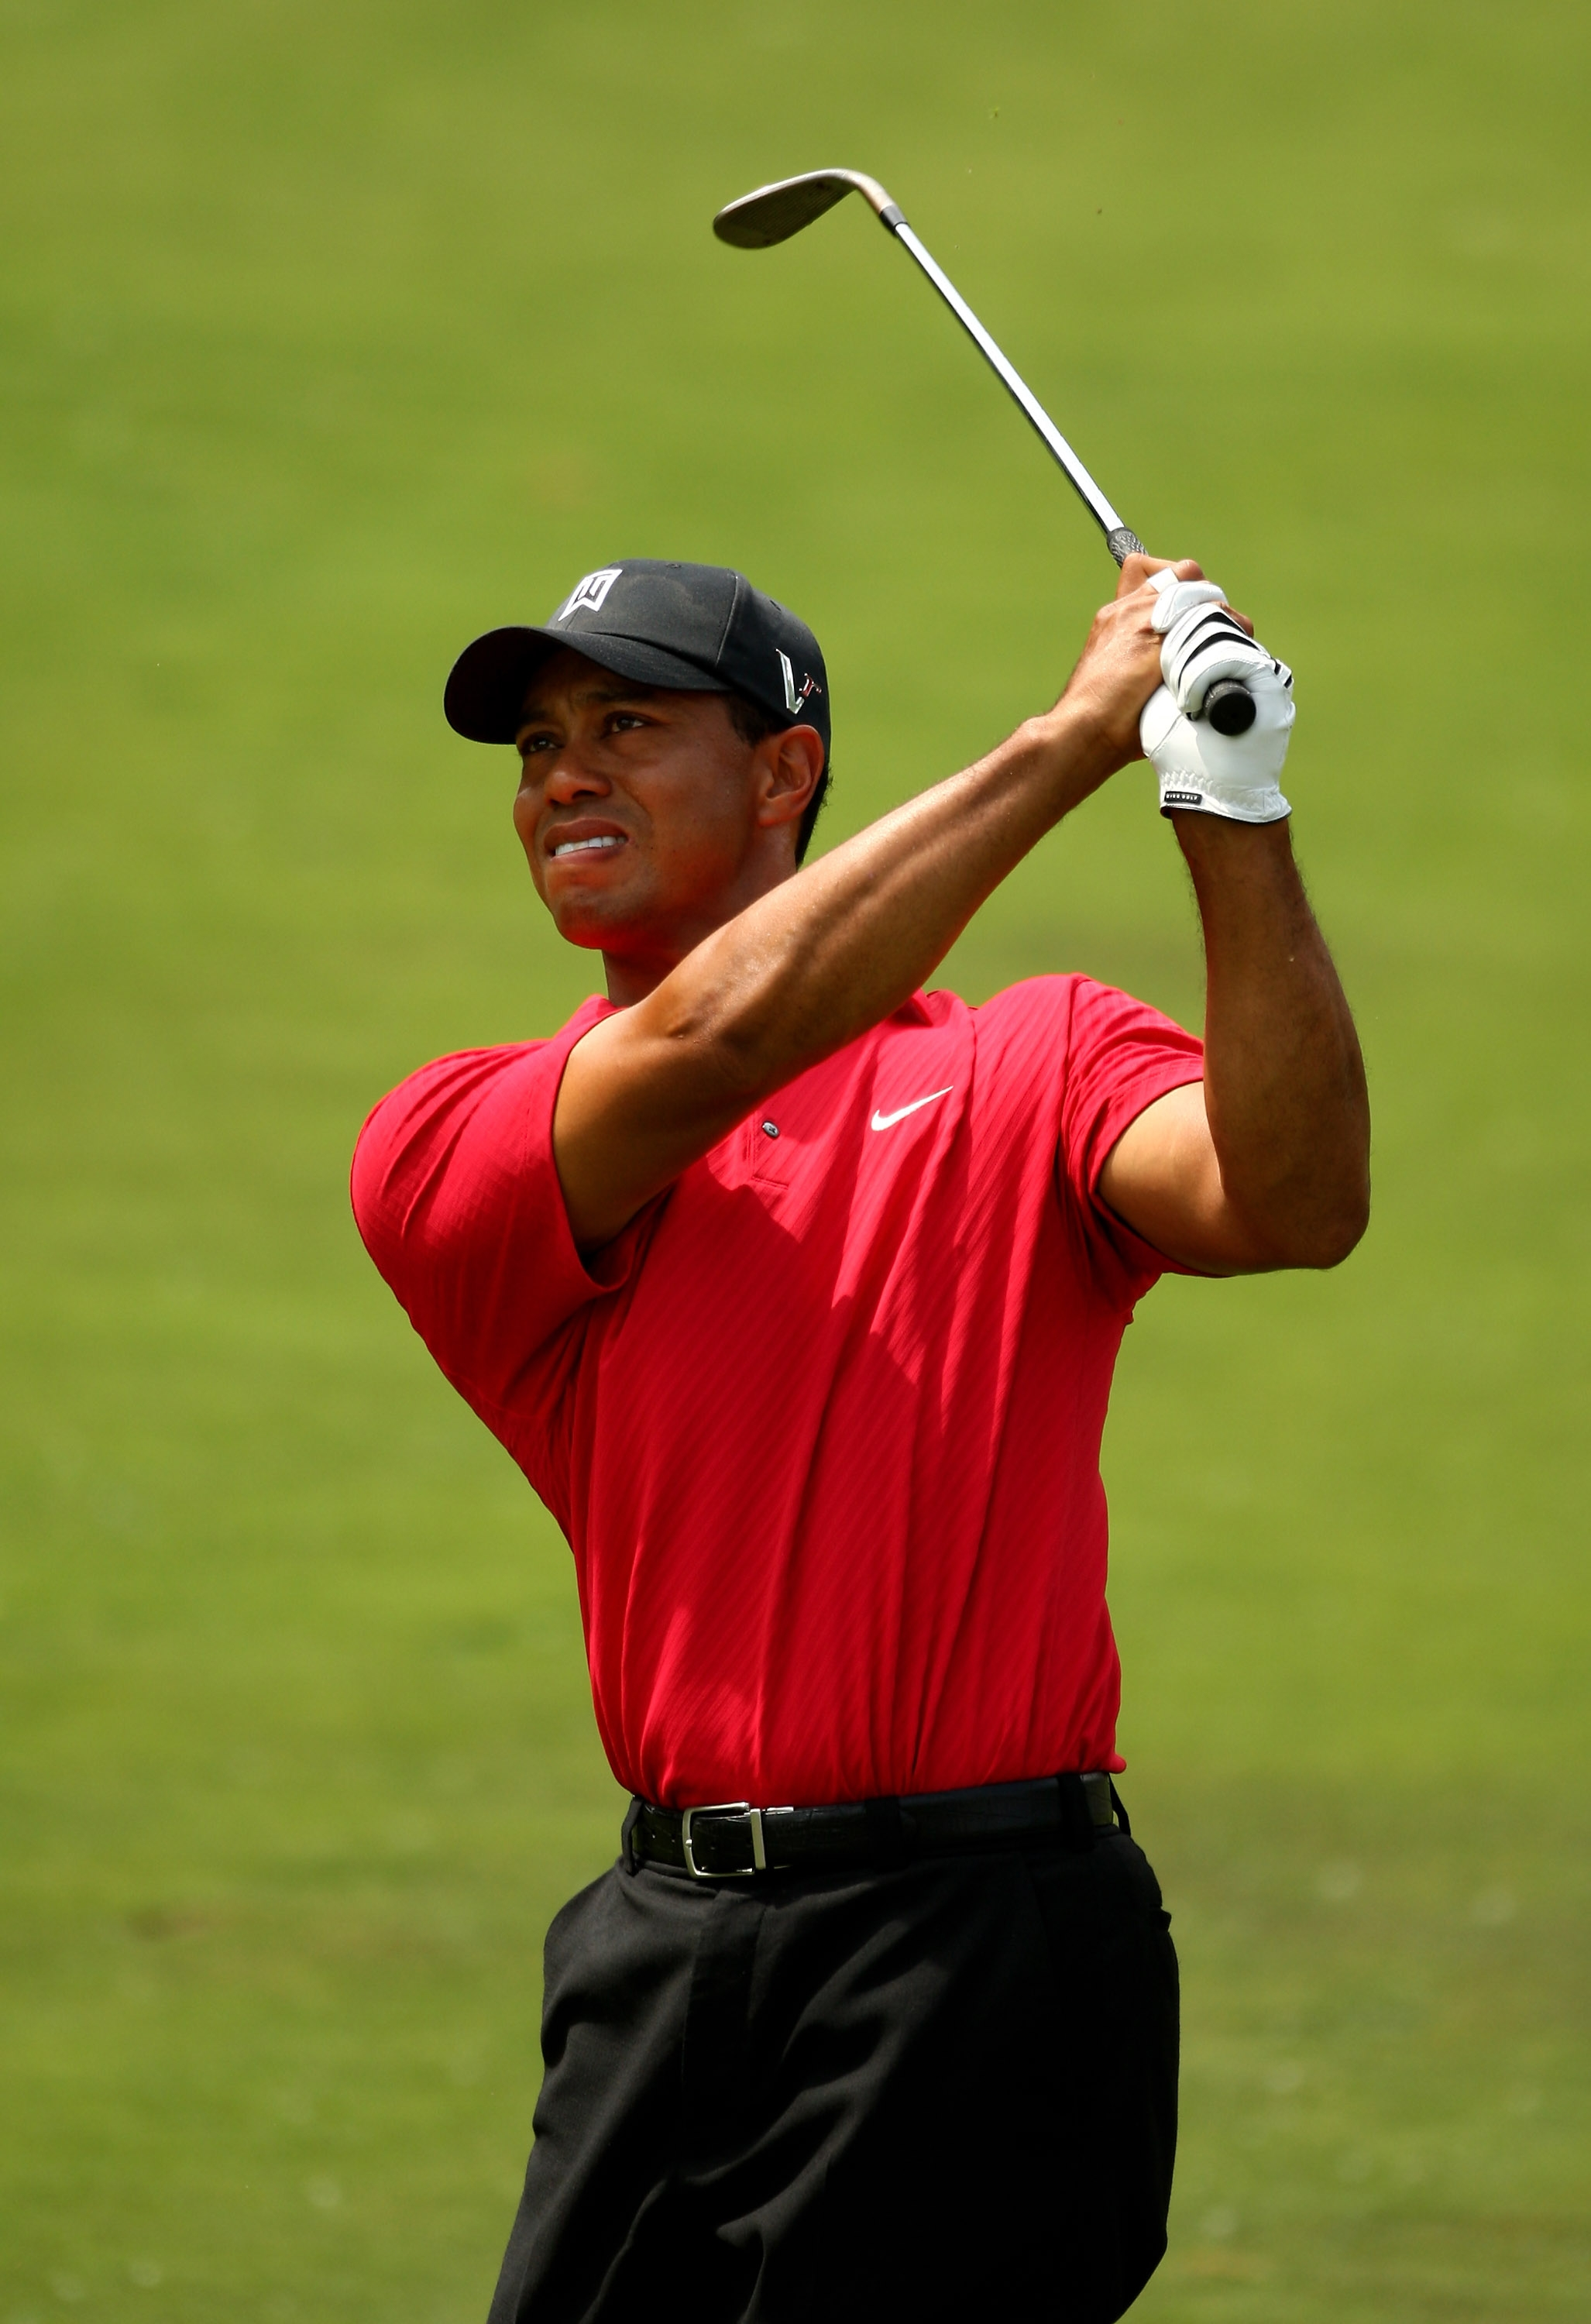 Tiger Woods Wallpaper Free